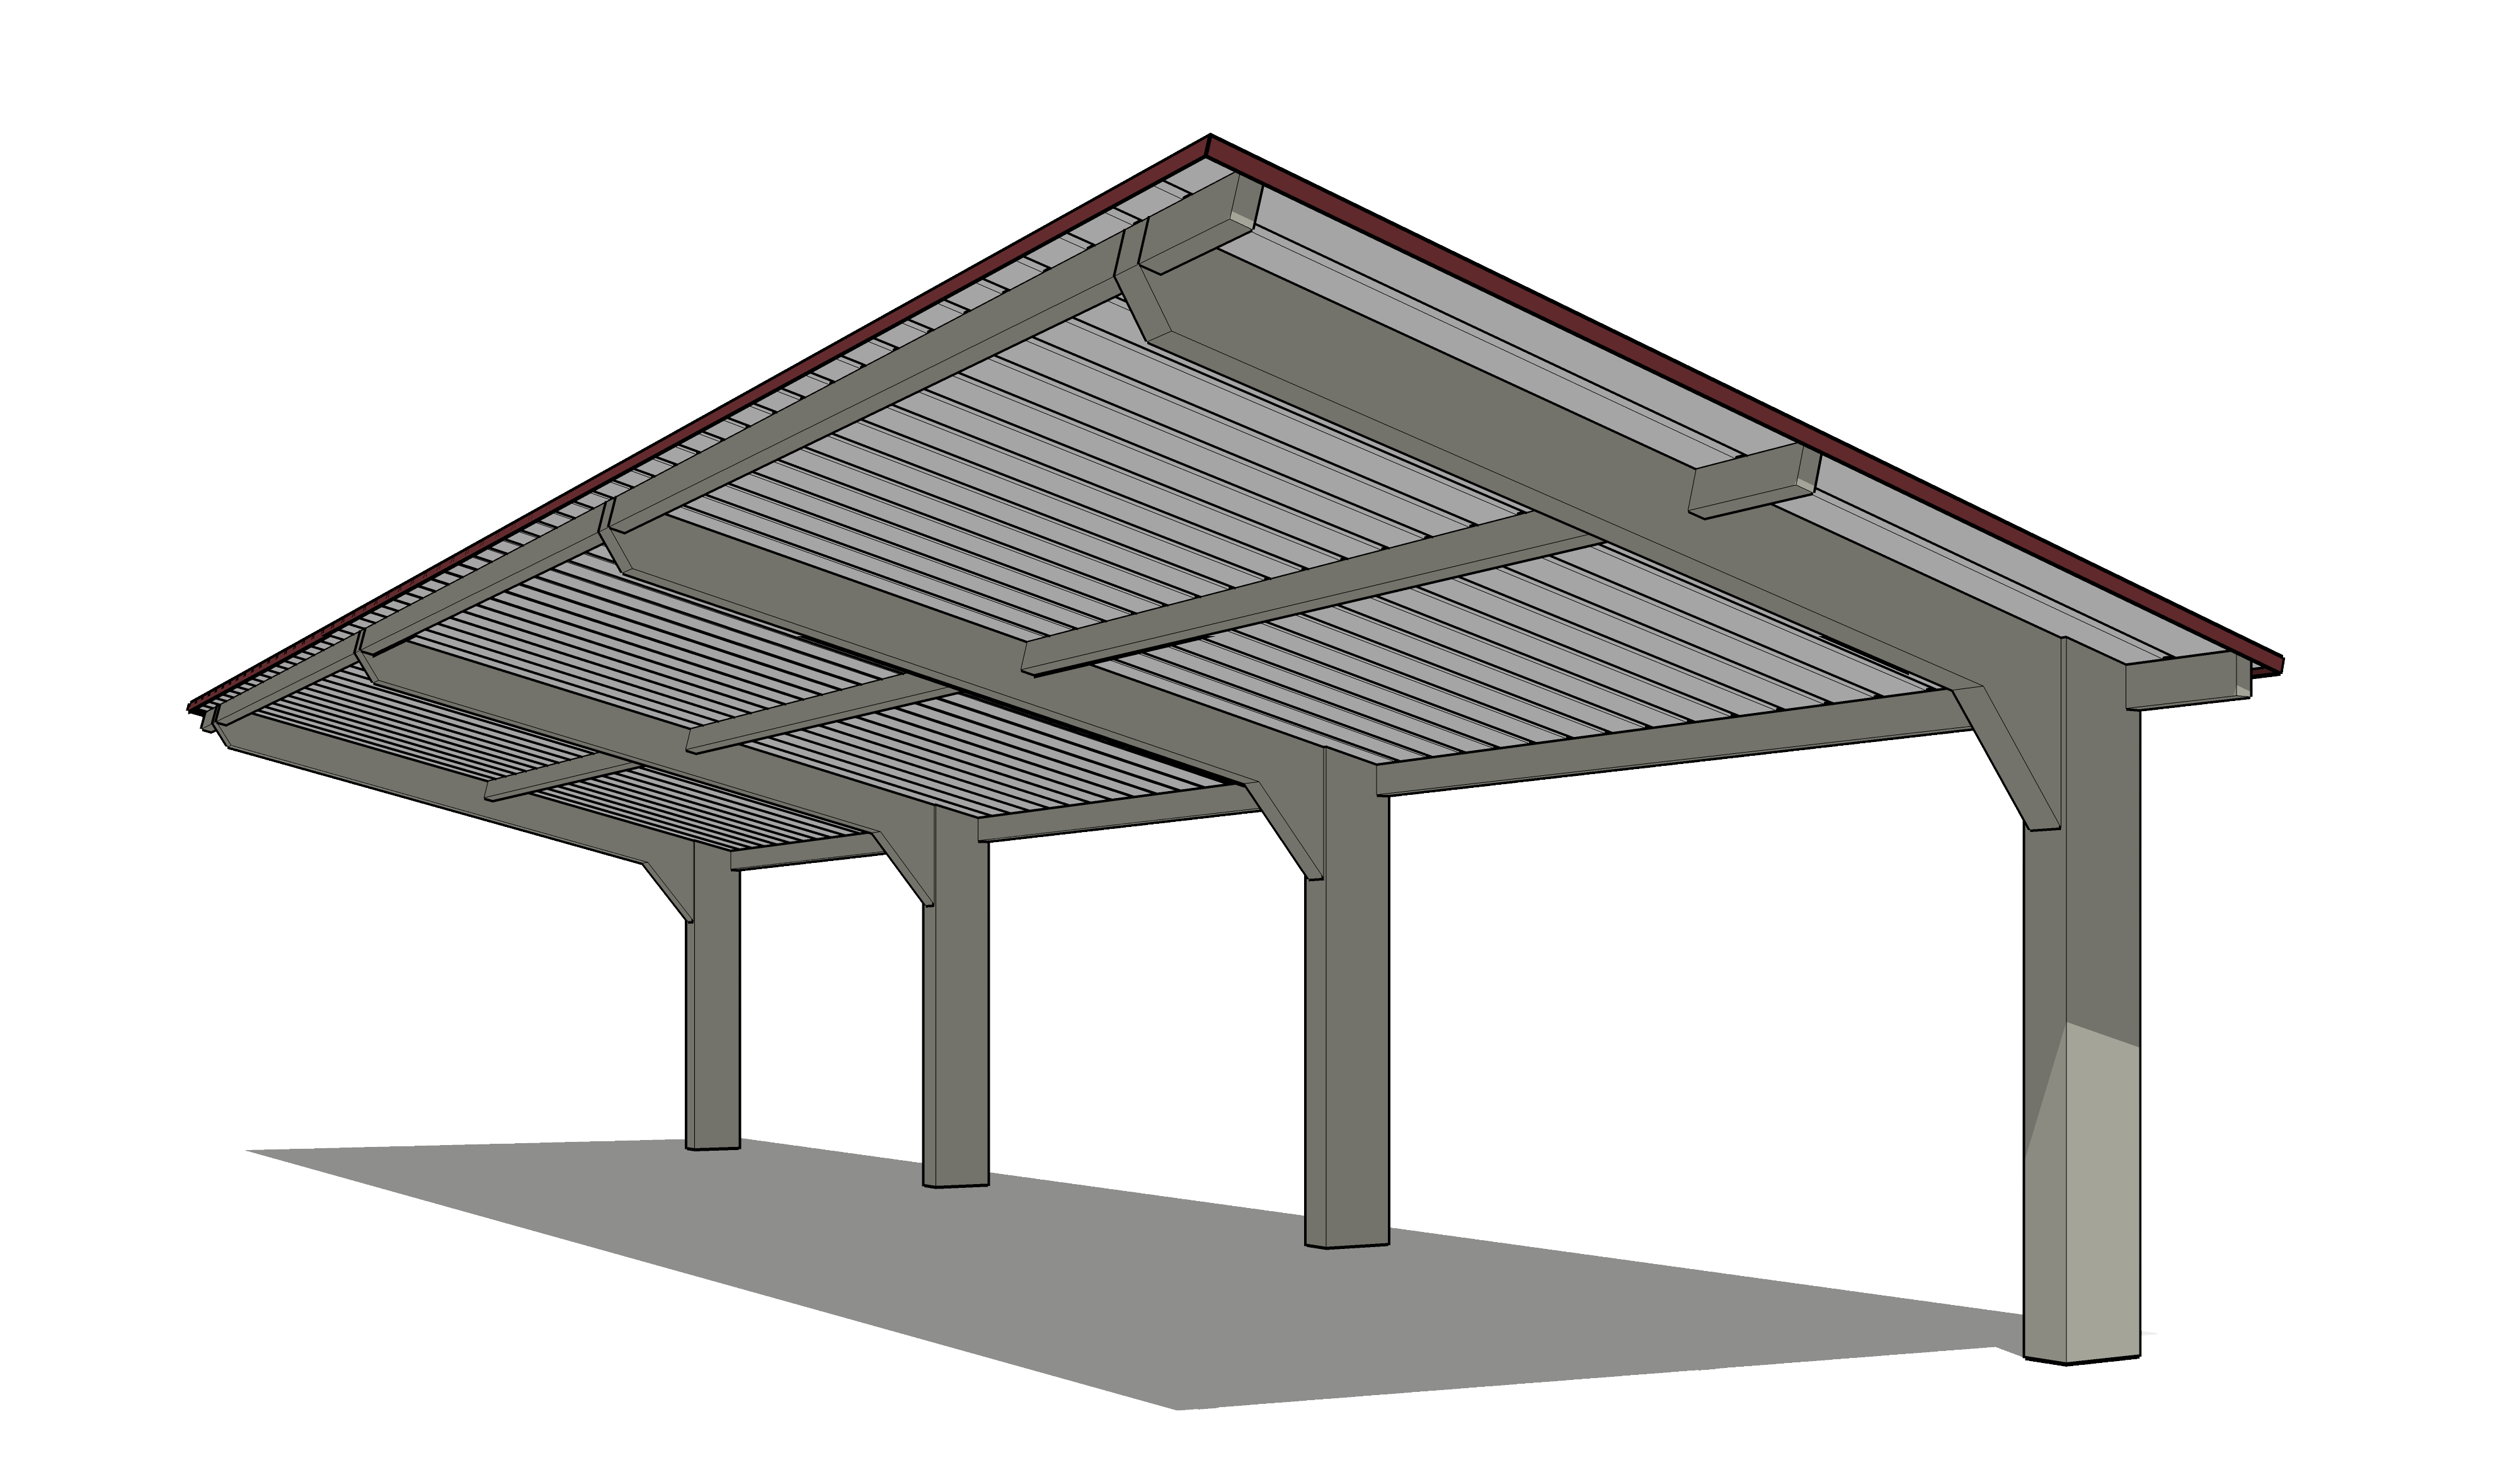 Steelworx Cantilevered Monoslopes Amp Dugouts Coverworx